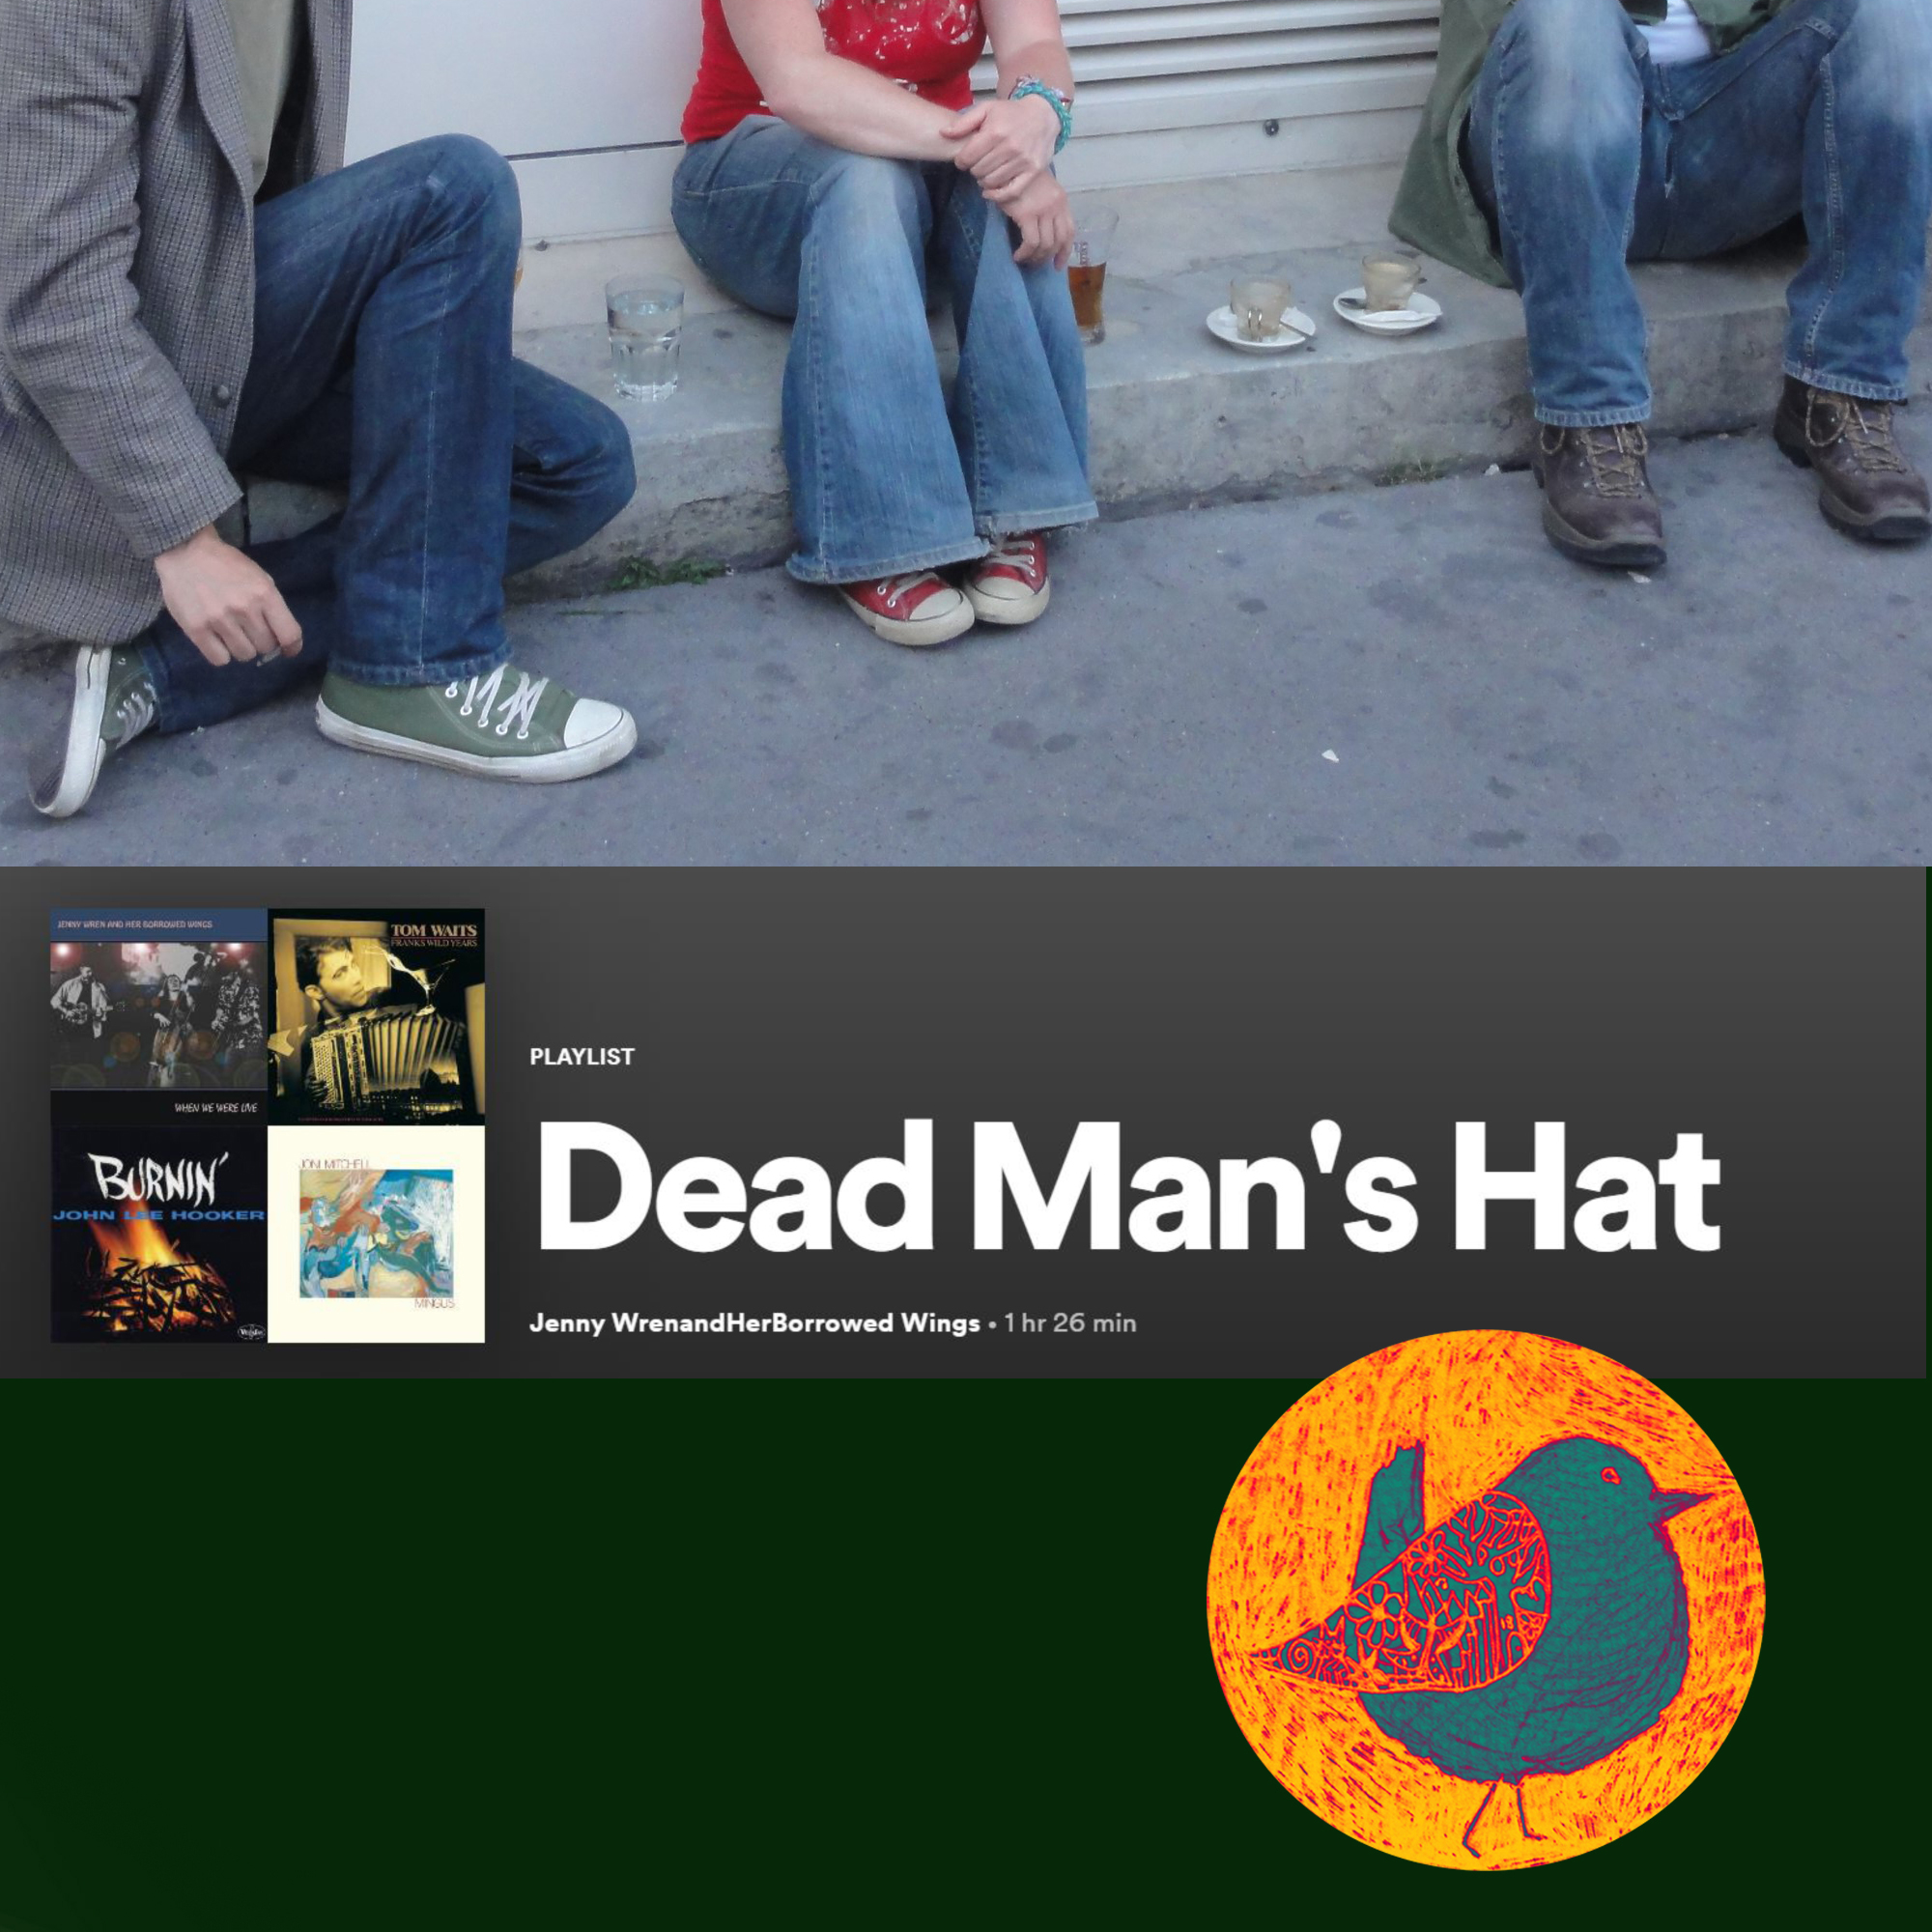 playlist image - dead man's hat copy